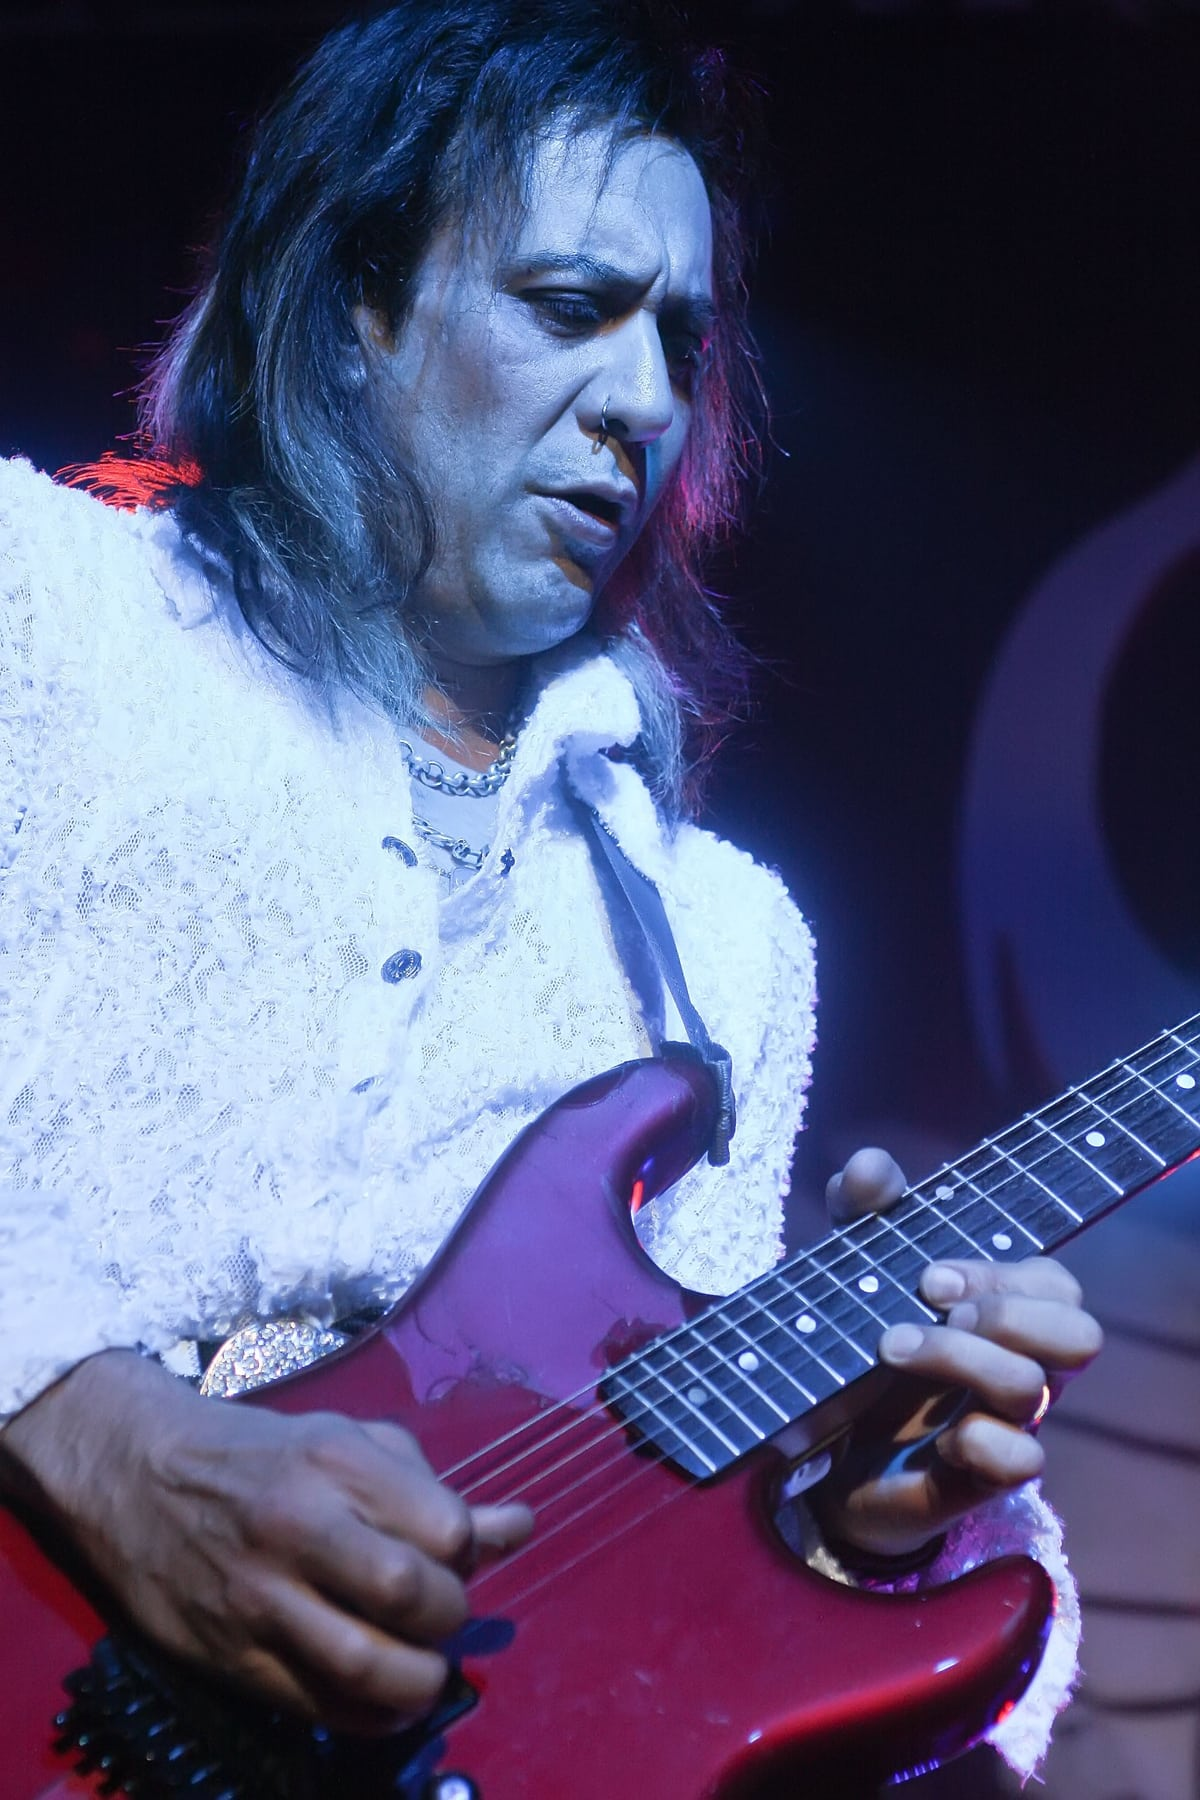 American guitarist Jeff LaBar died on July 14, 2021, at the age of 58, in Nashville, Tennessee